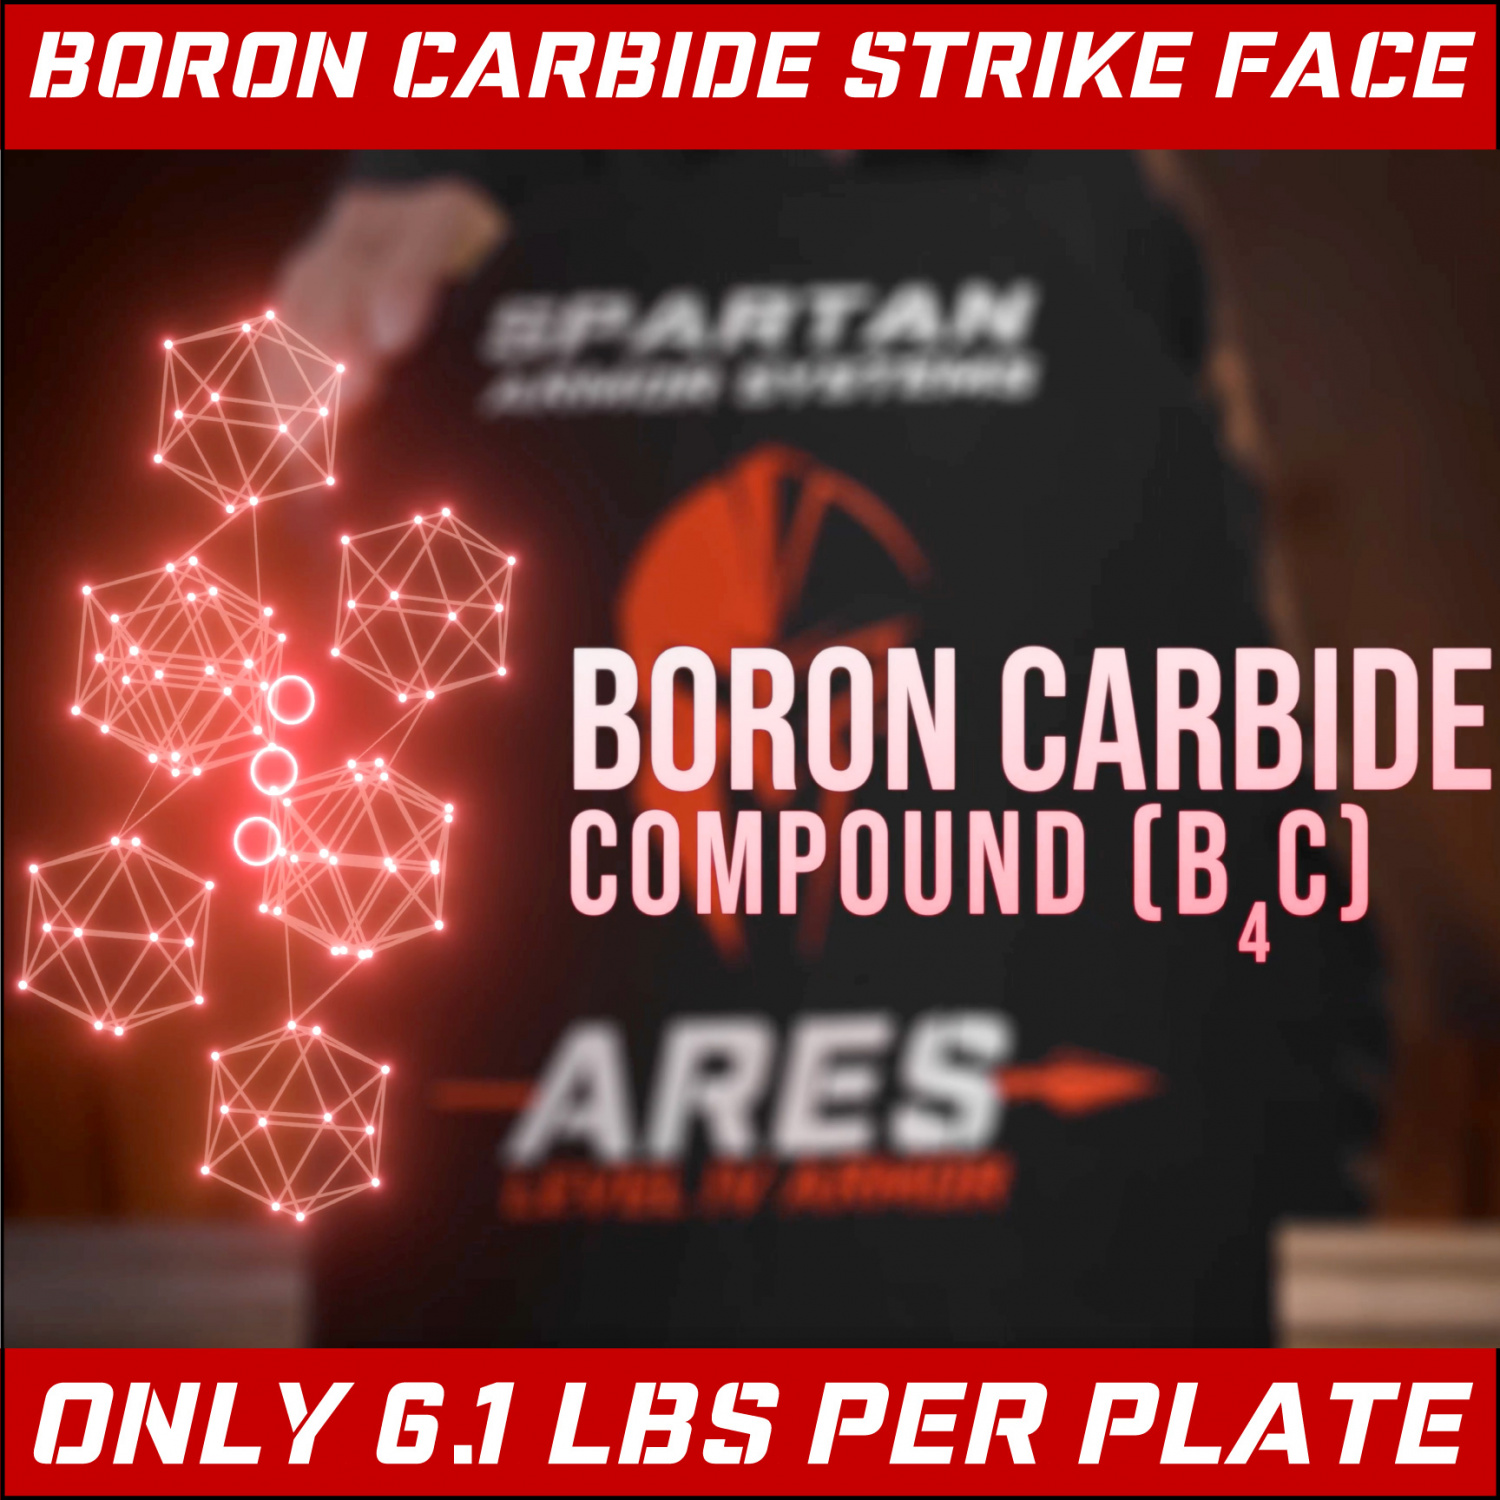 Spartan advertises that their use of boron carbide in the Ares plate is superior to other armor manufacturers' materials, like aluminum oxide.